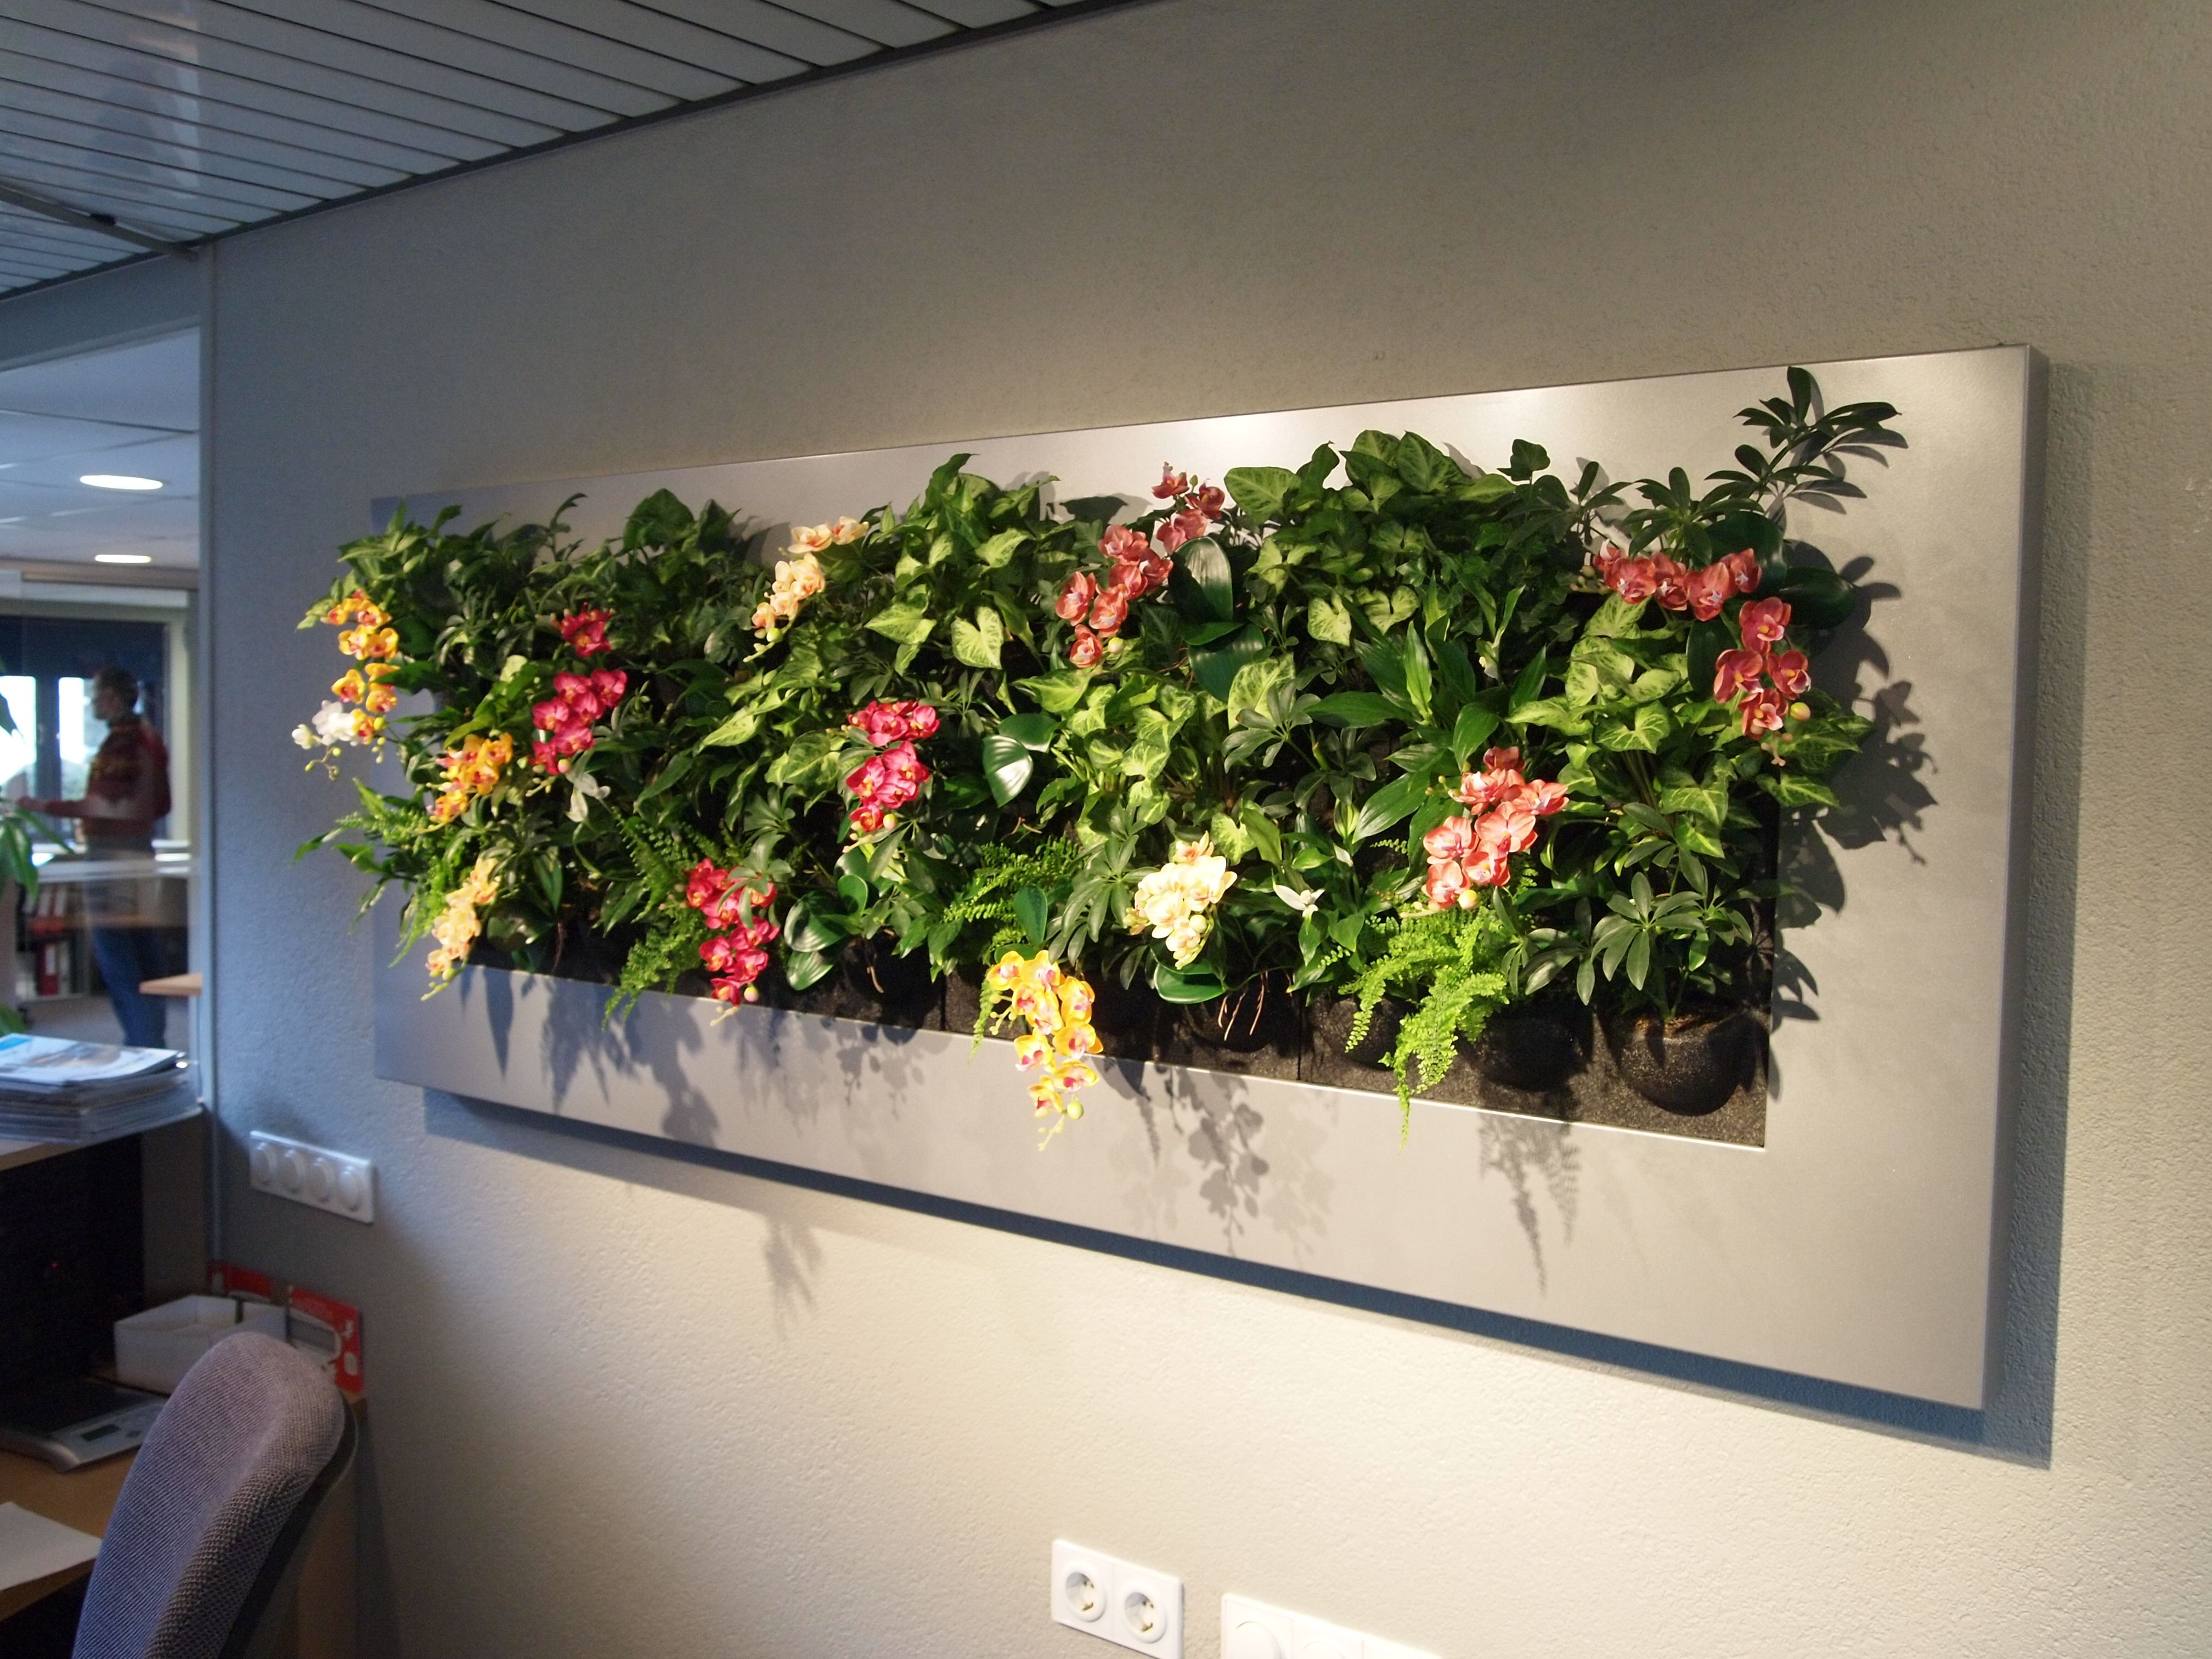 Livewall green wall system make conferences more comfortable - Great Living Picture Hung On Wall Behind Reception Desk In Office